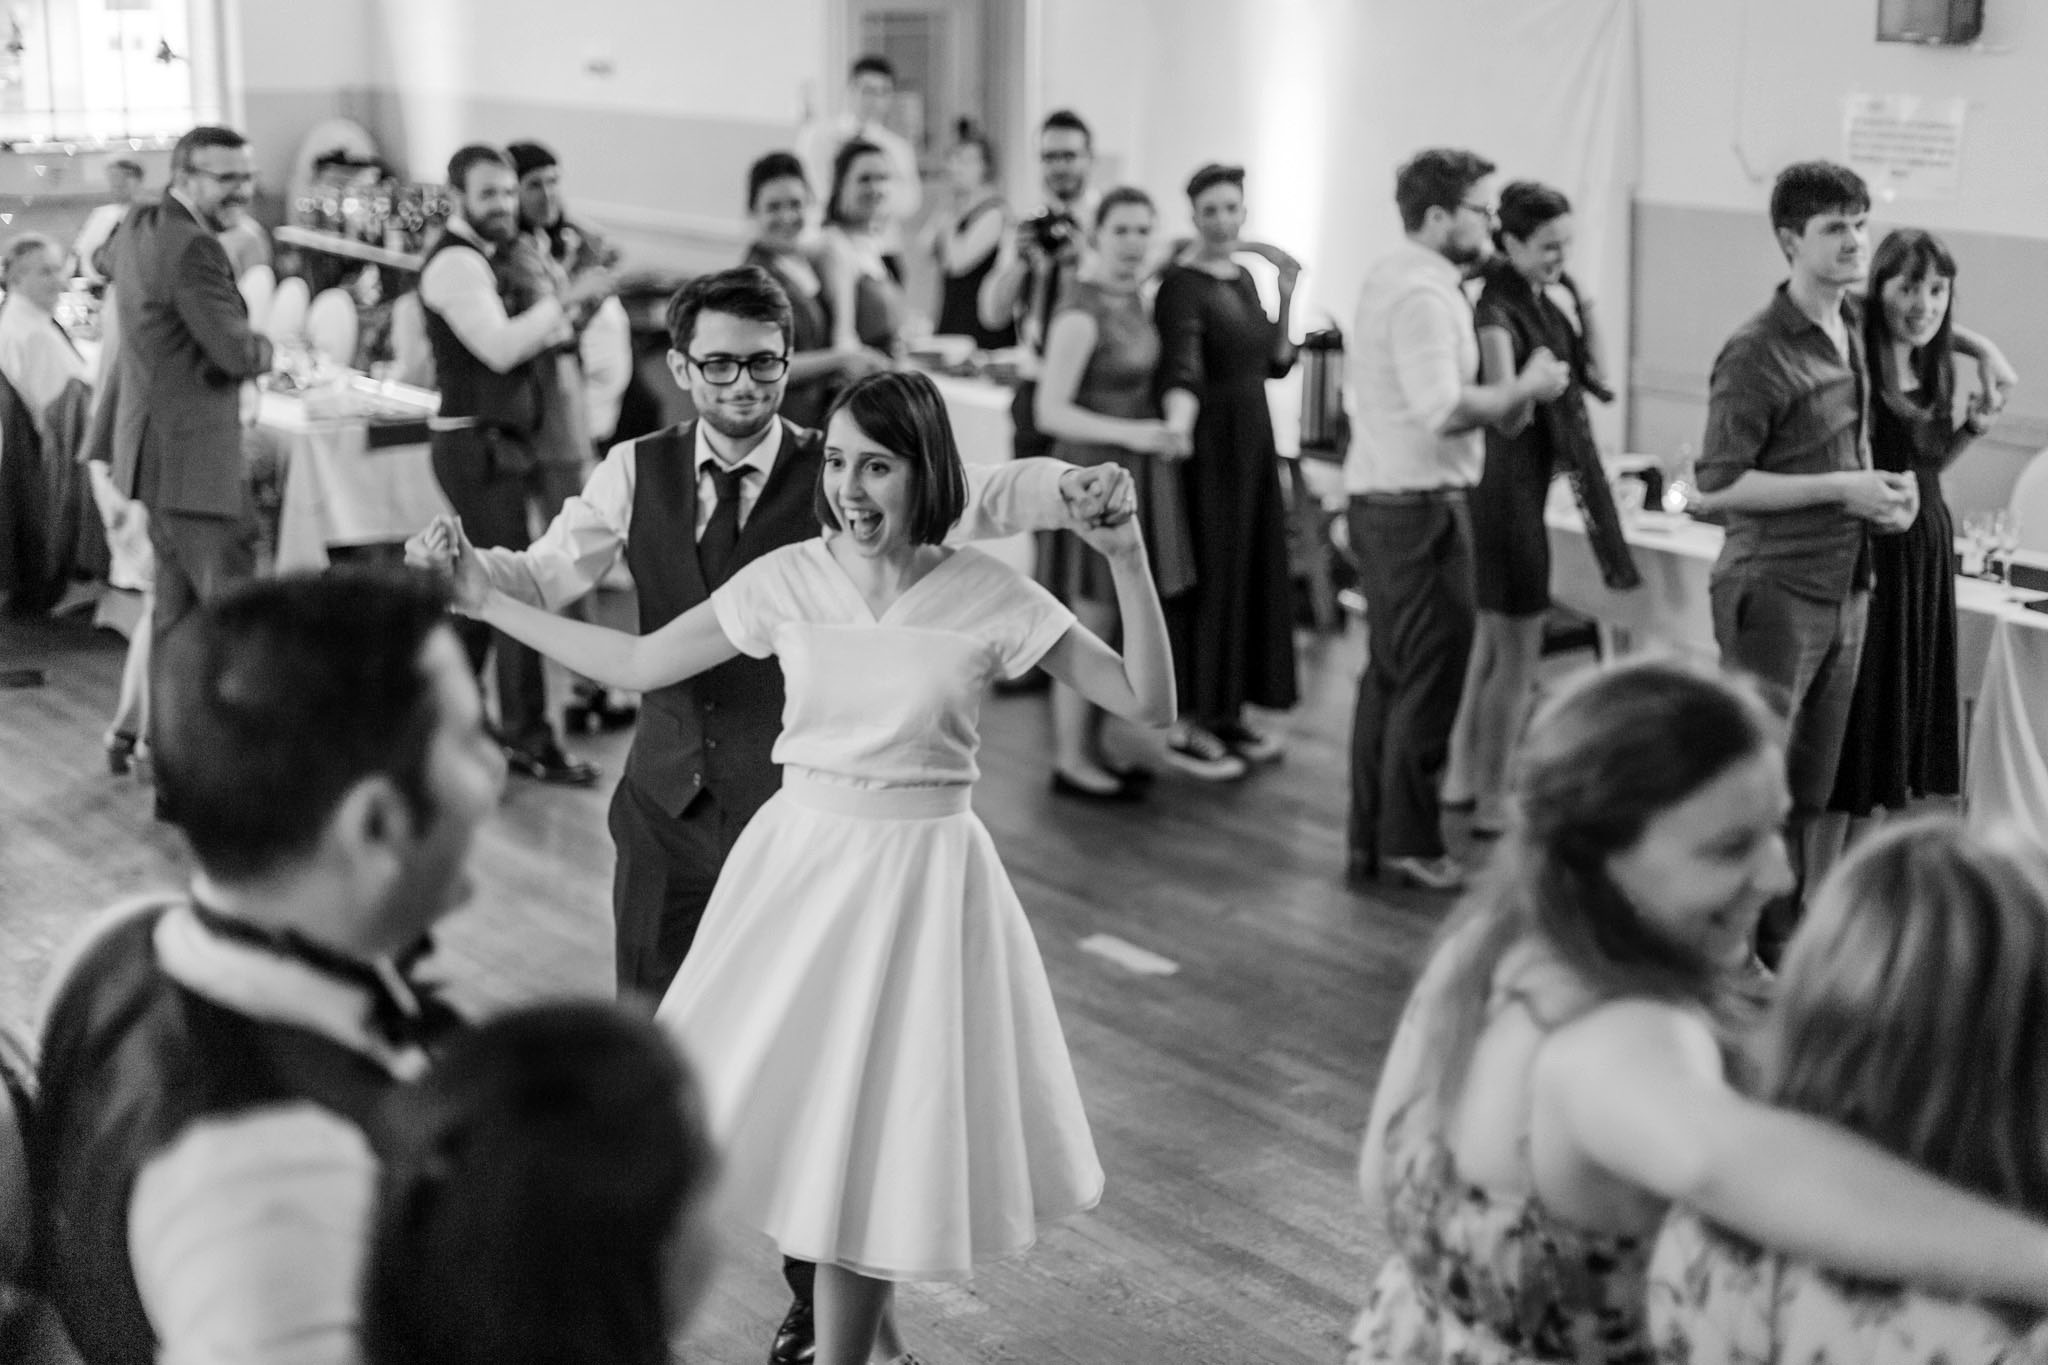 REAL WEDDING - Katy and Matt's North London Green Wedding, captured by Lilly Sells Photography